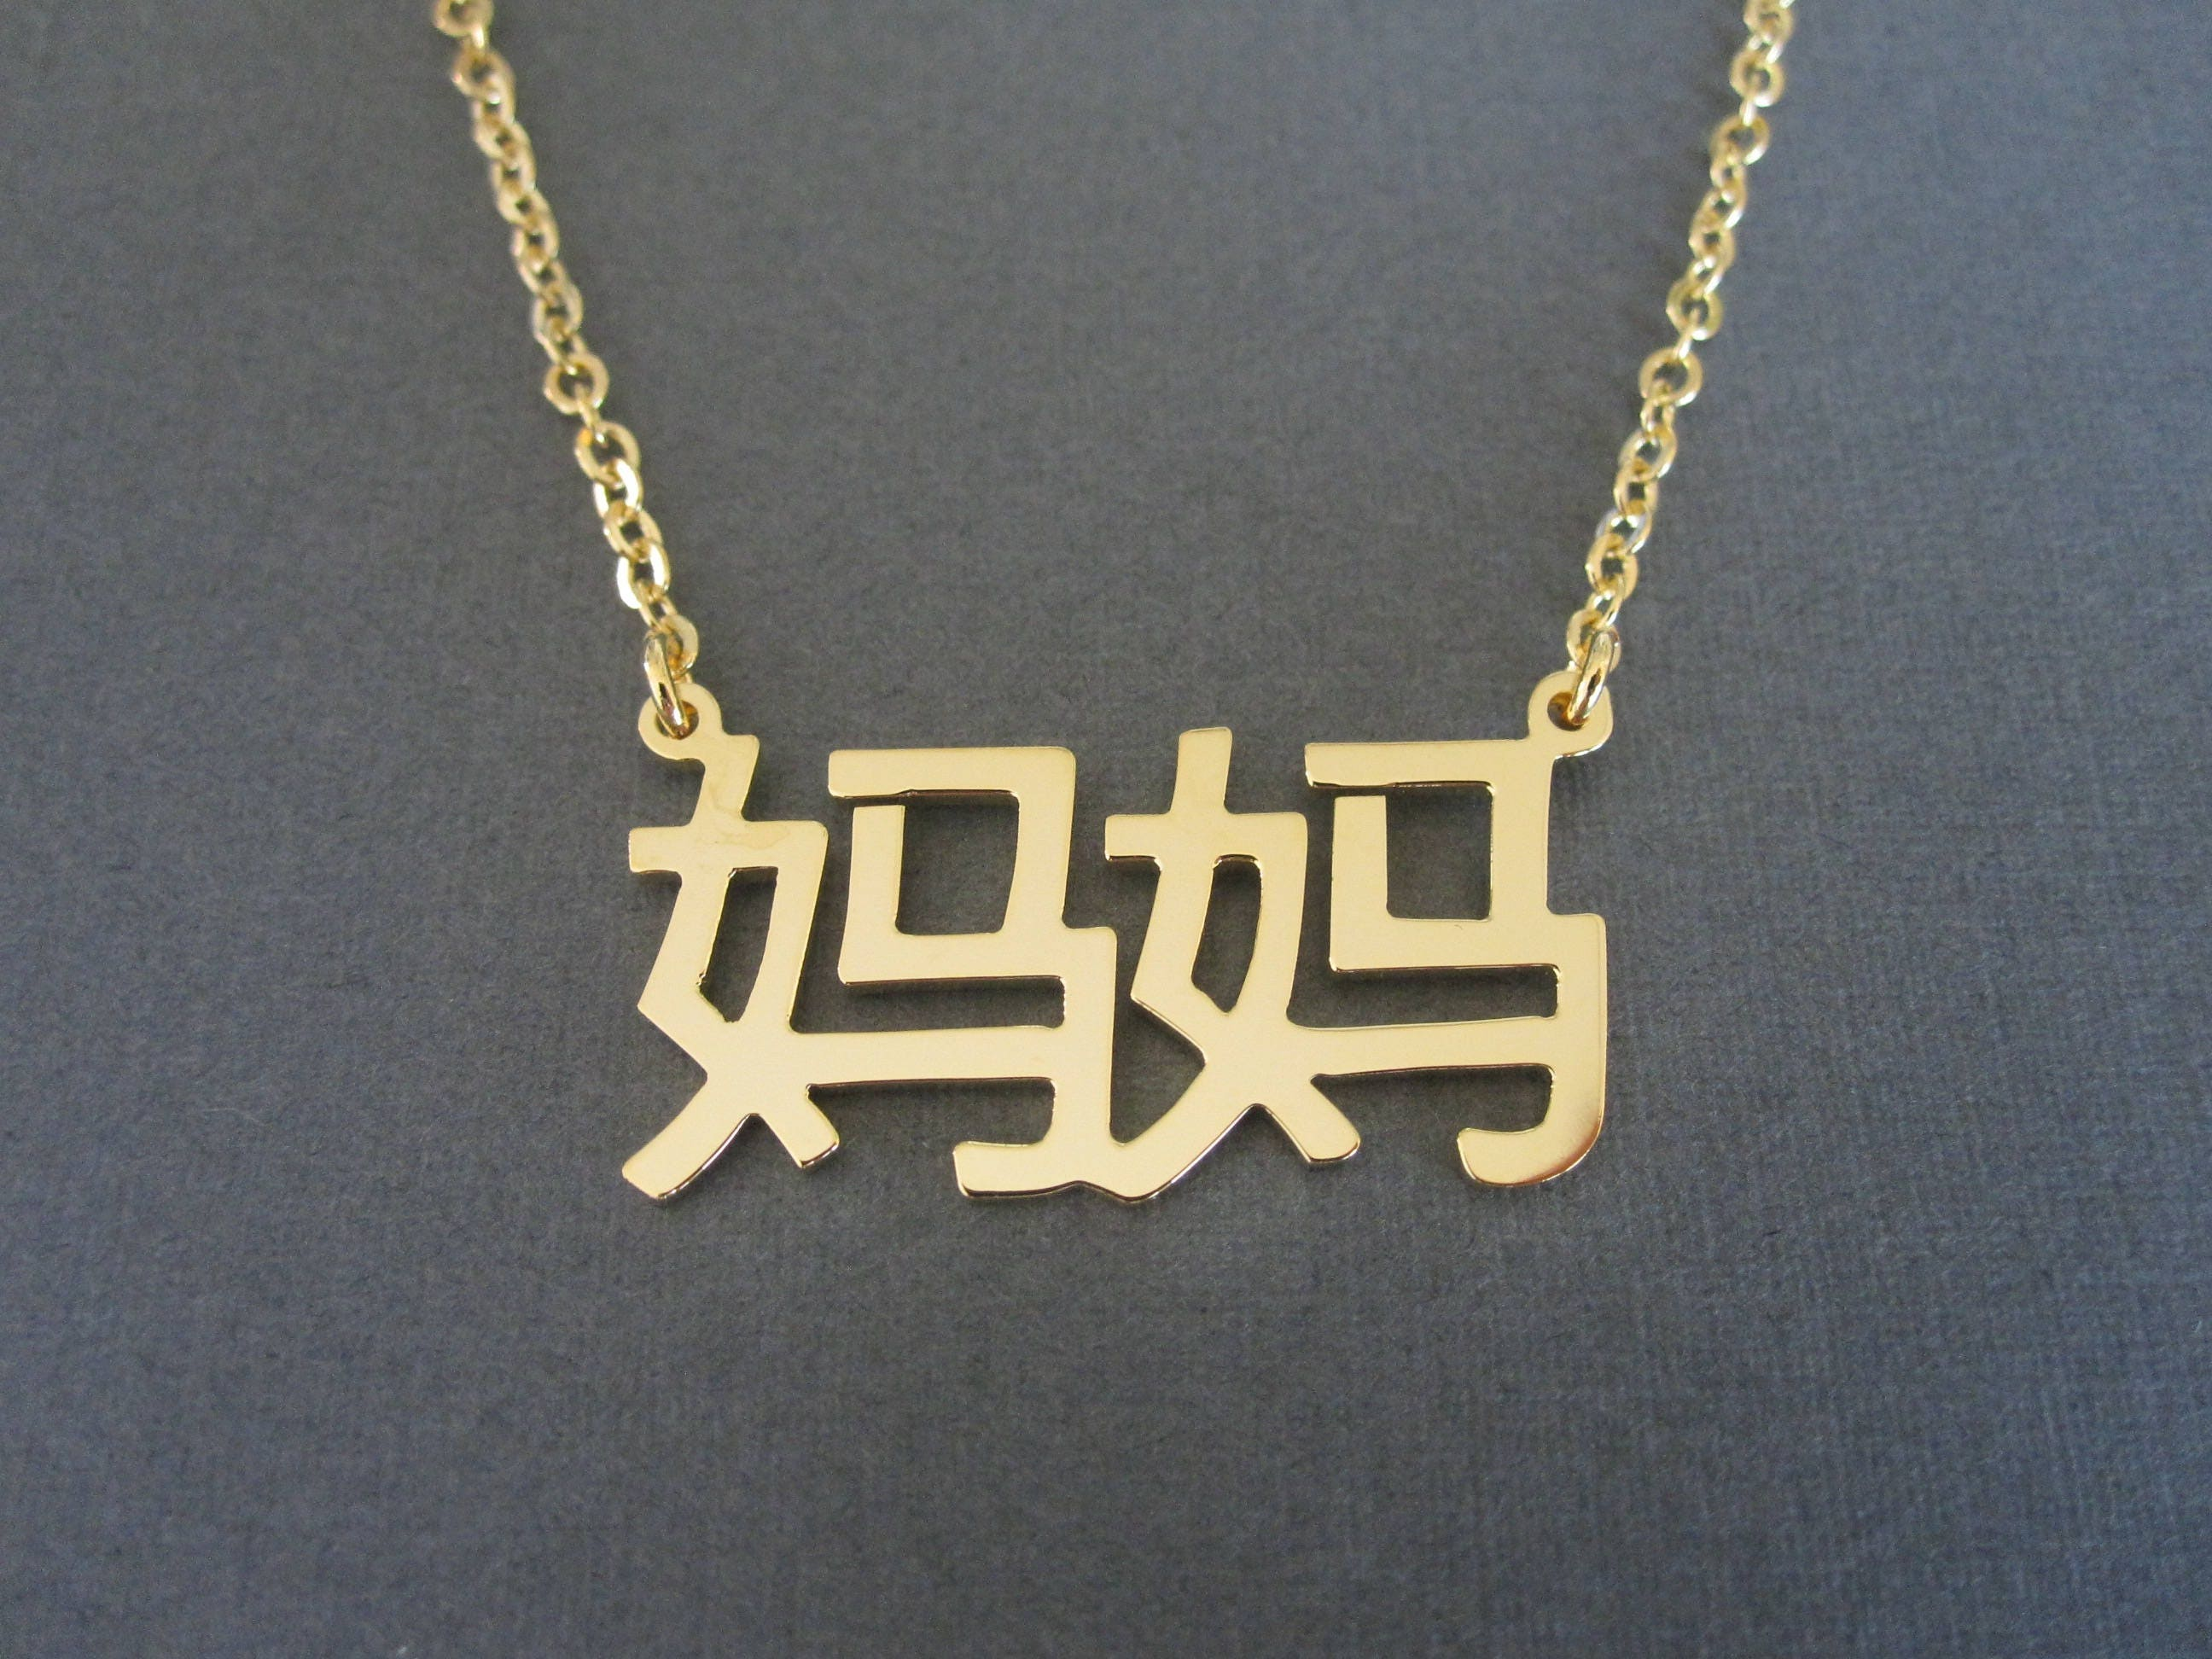 initial necklace milkandhoney name jewelry two collections new chains mother child cropped bird baby love dsc tone